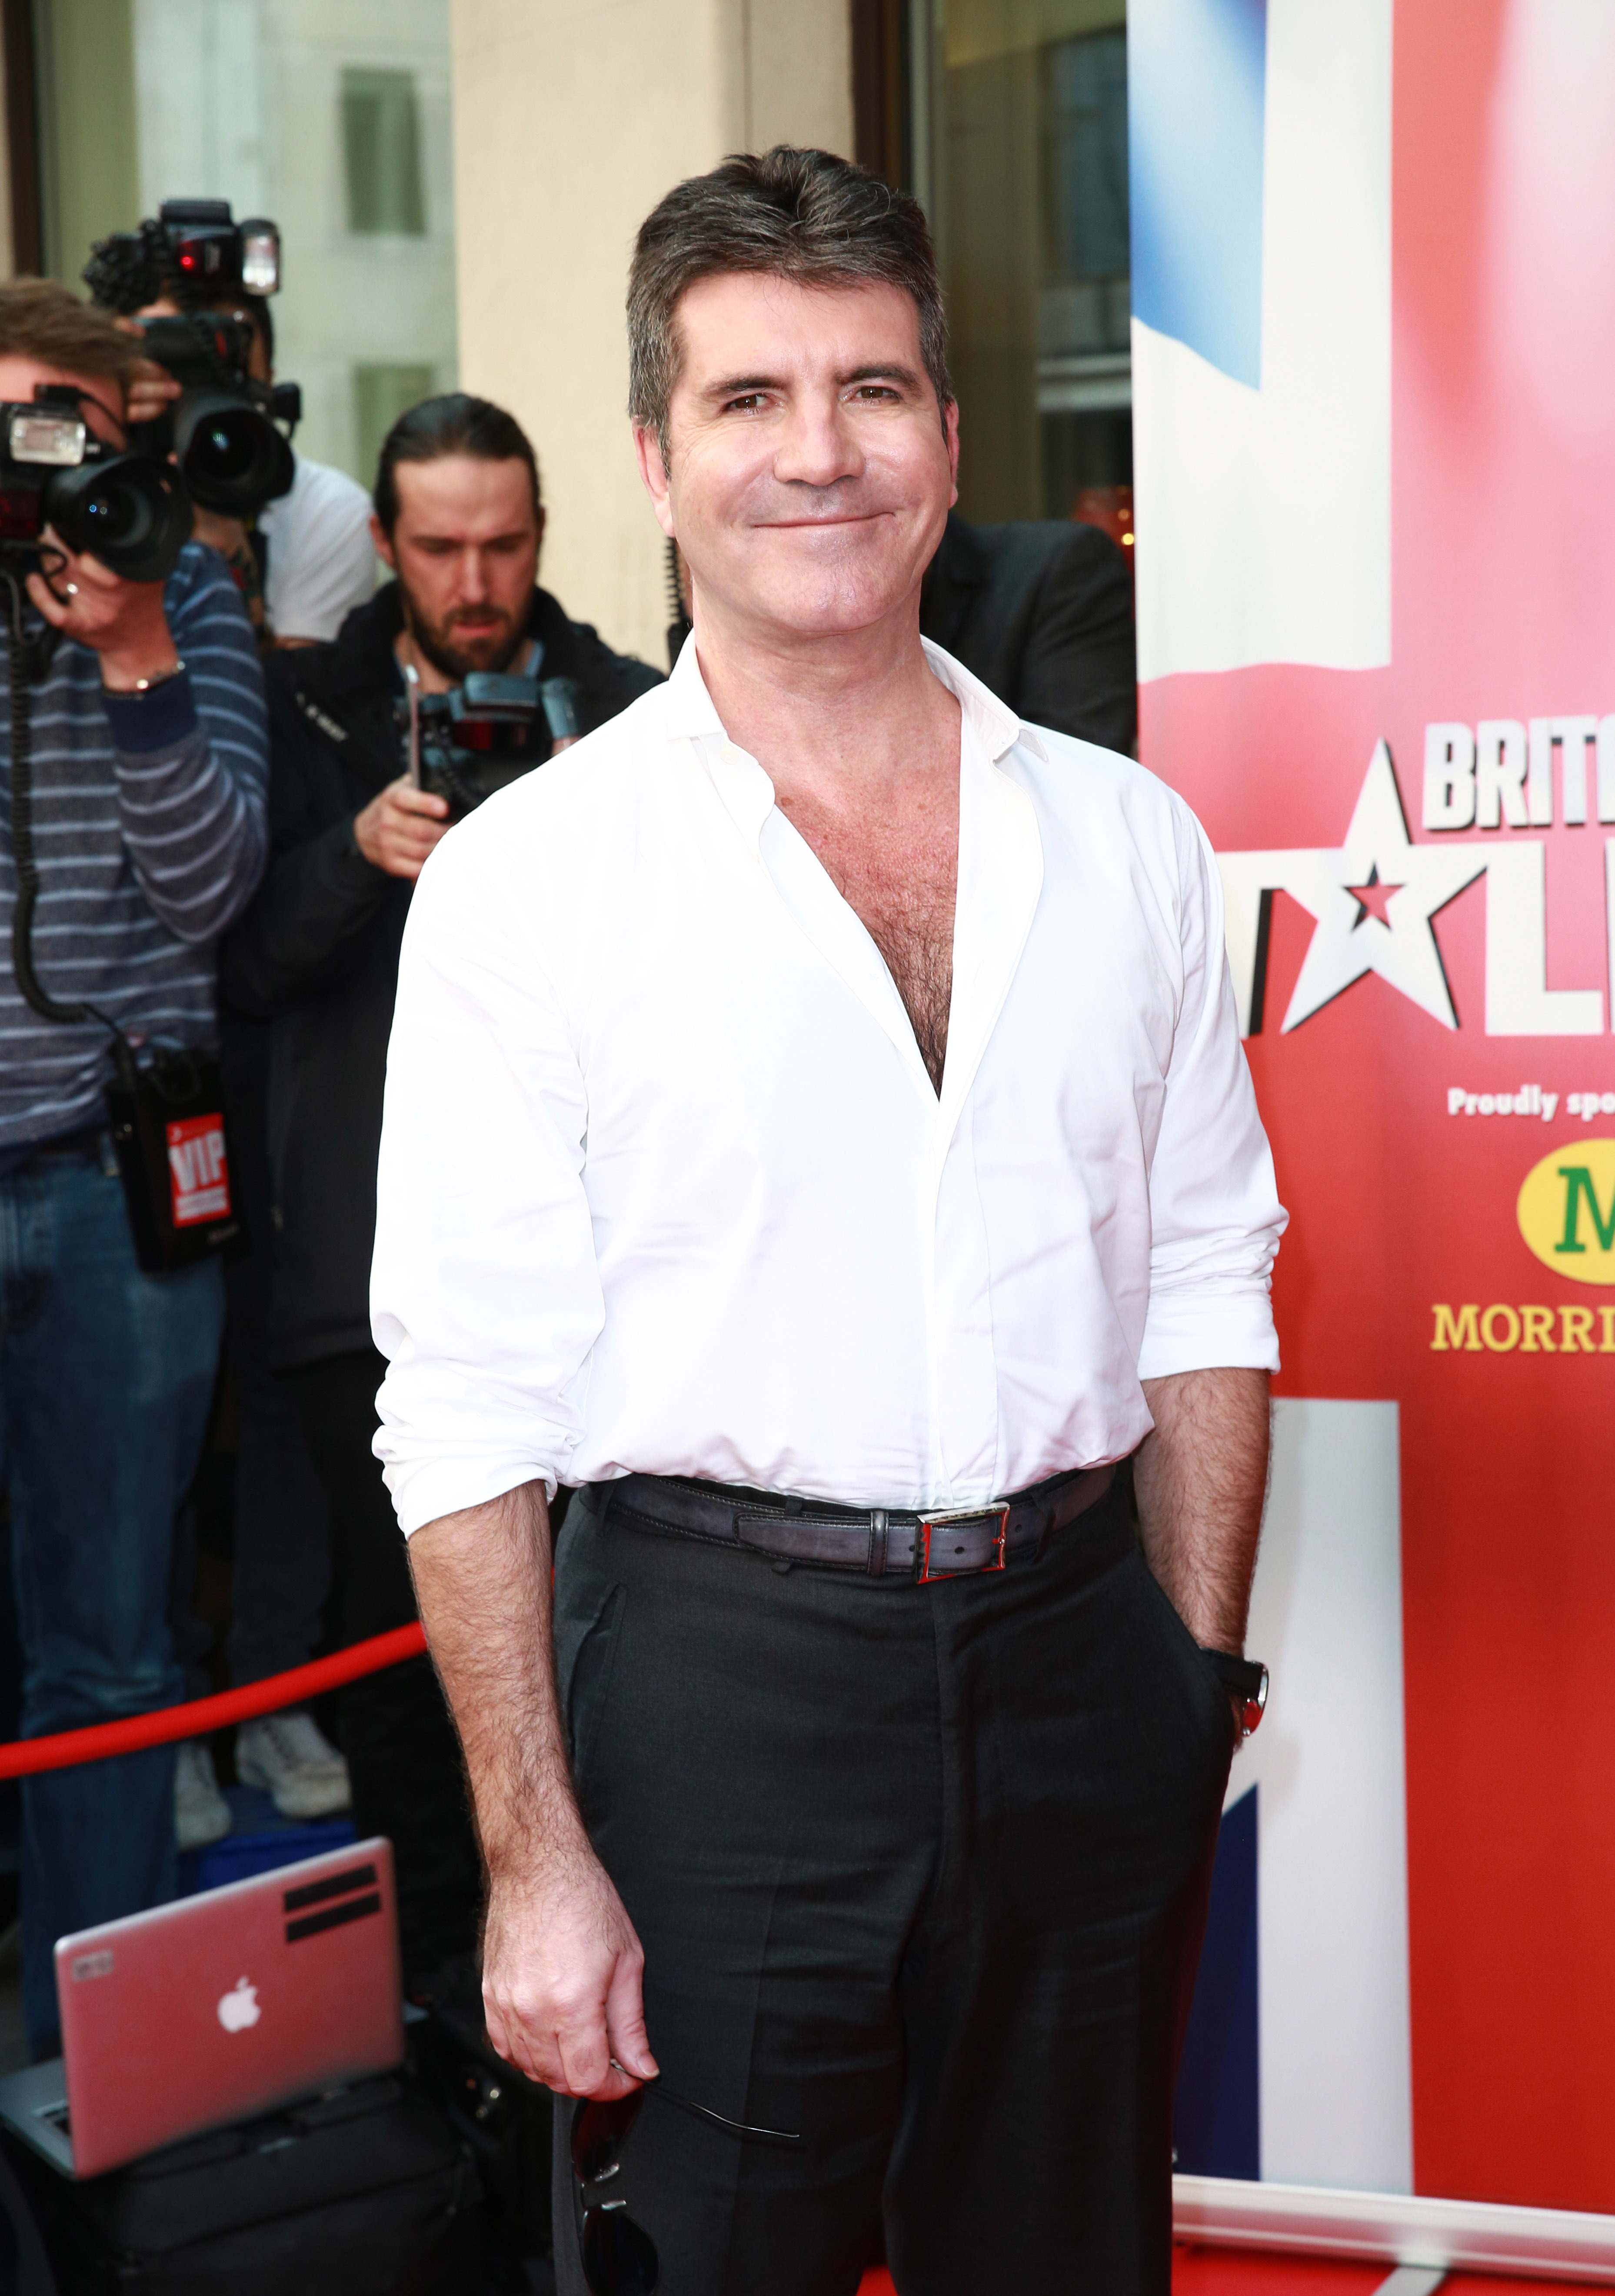 Simon Cowell doesn't know if 1D will get back together